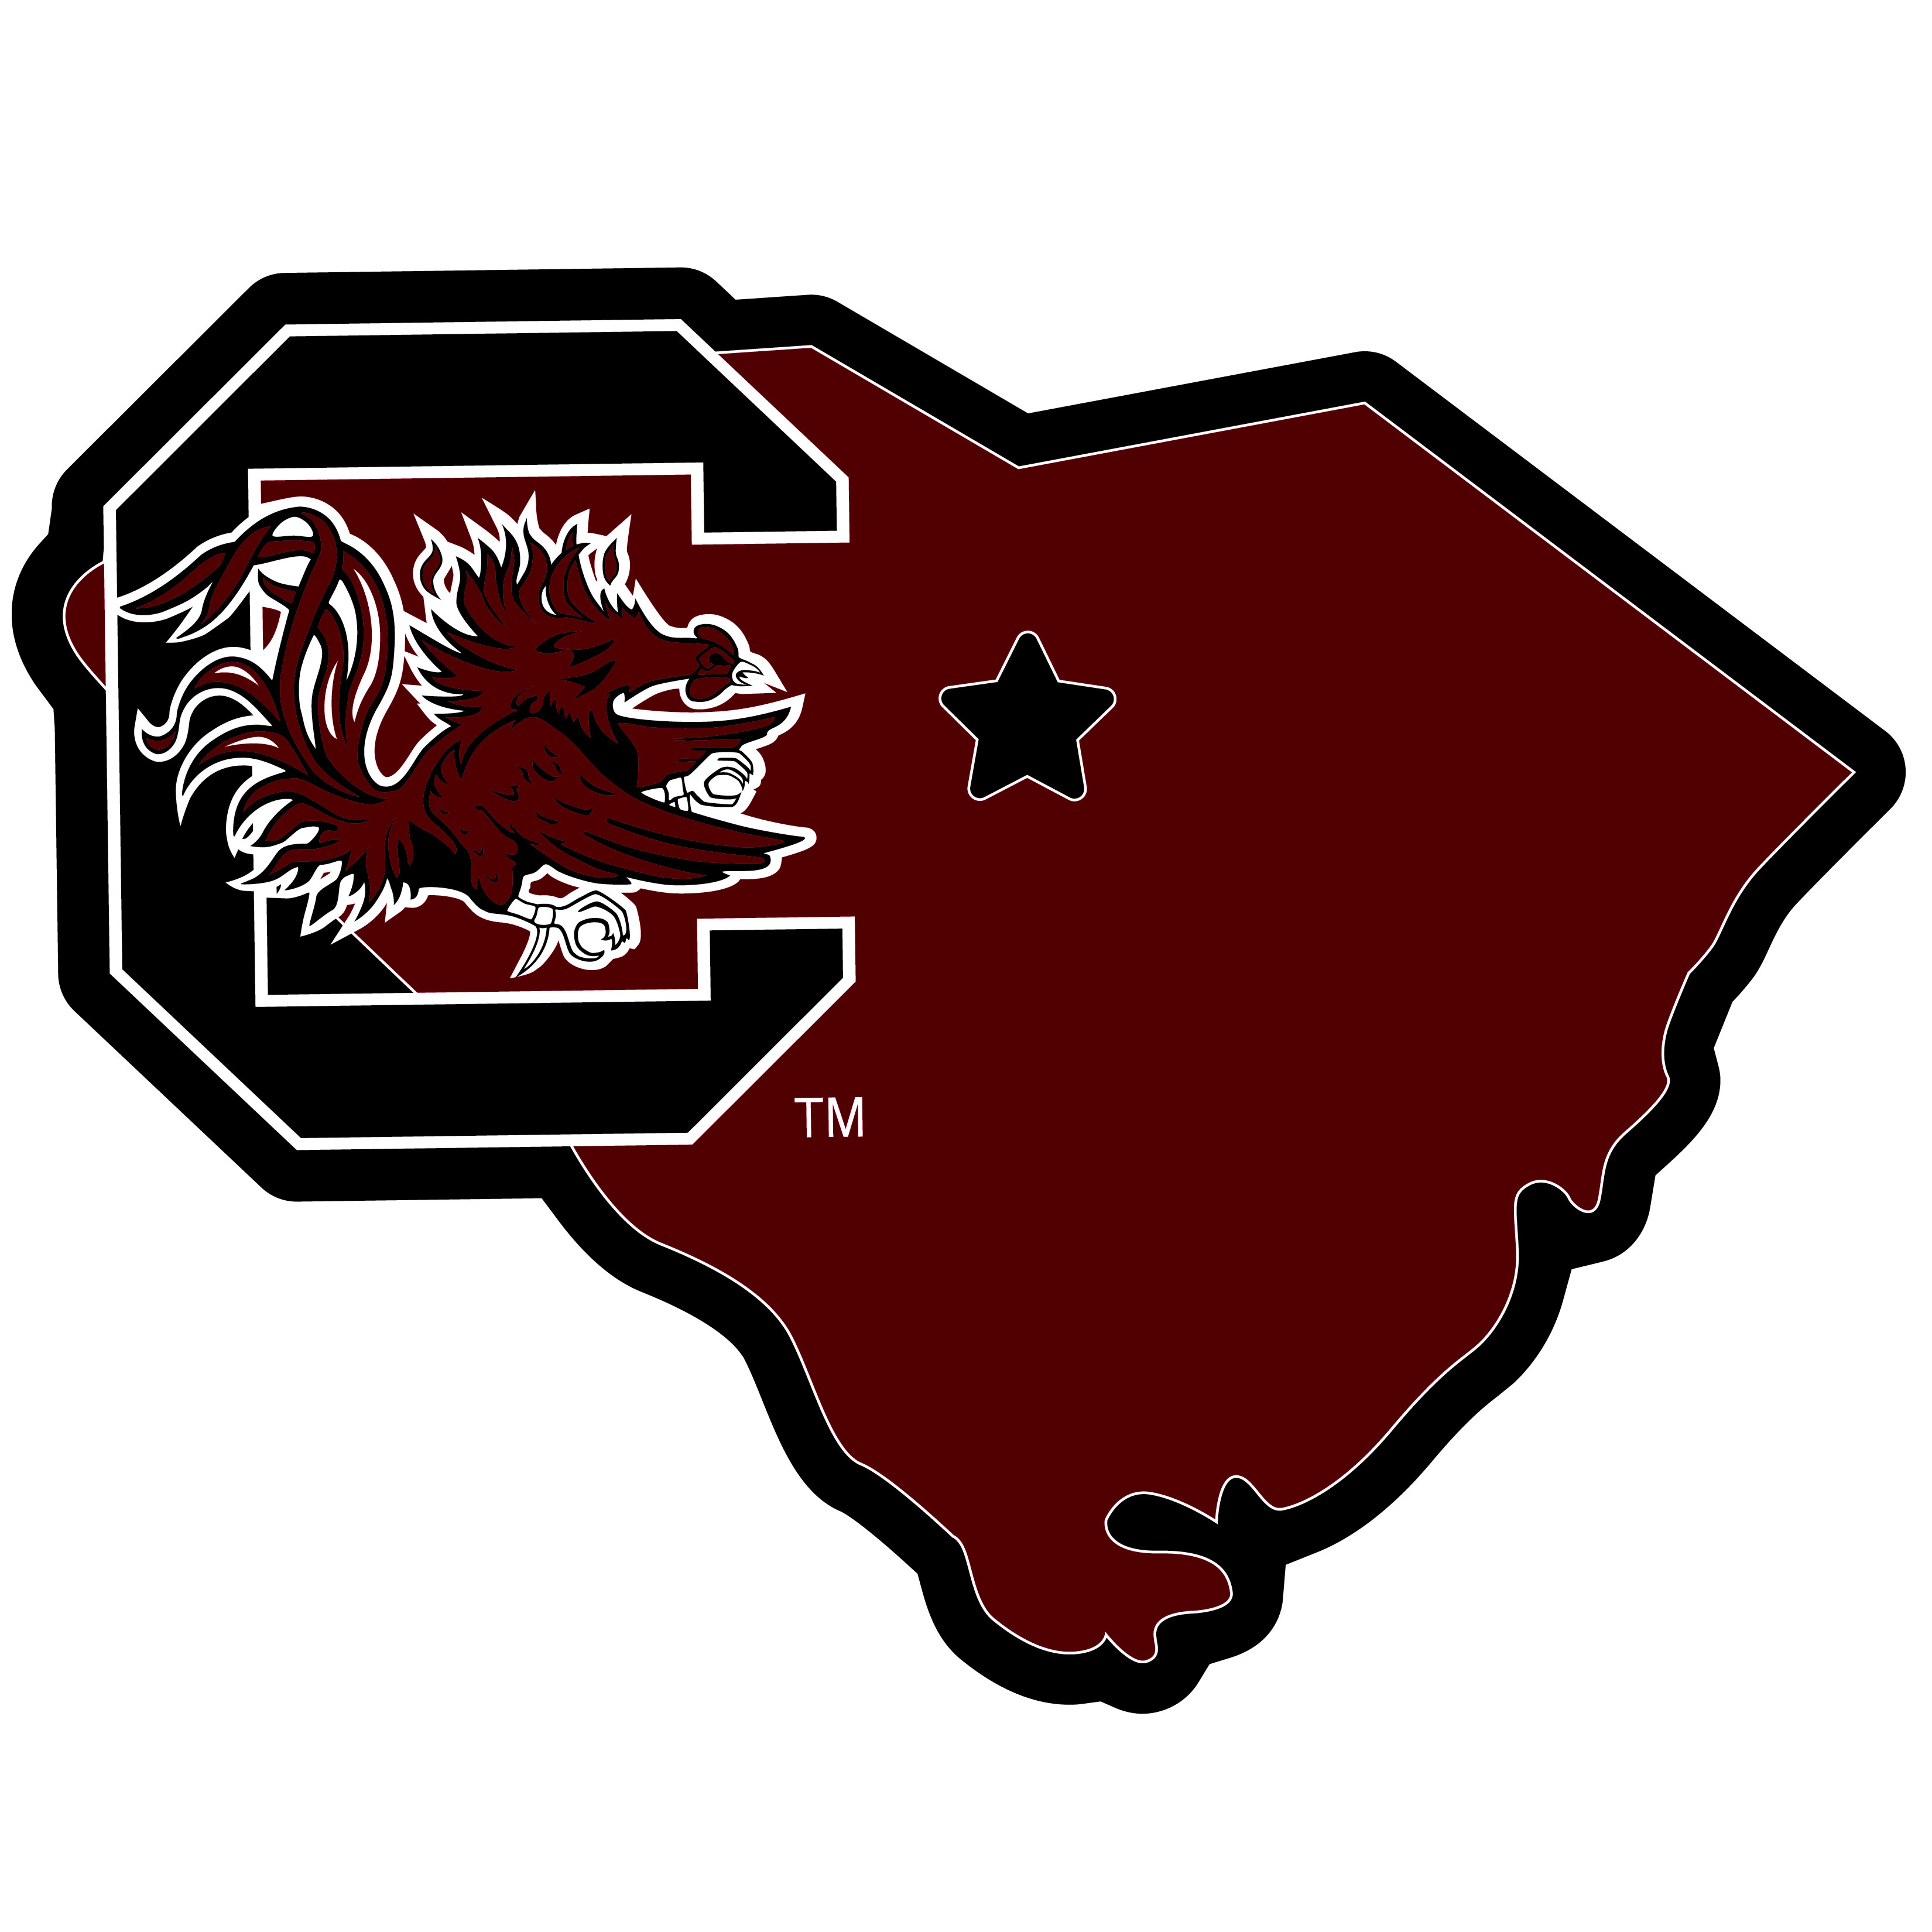 S. Carolina Gamecocks Home State 11 Inch Magnet - Whether you are caravaning to the game or having a tailgate party make sure you car is wearing its fan gear with our extra large, 11 inch S. Carolina Gamecocks home state magnets. These striking magnets can be easily placed on for game day and removed without he residue left by decals. The design features a bright state outline with the location of the team highlighted with a football and a large team logo.